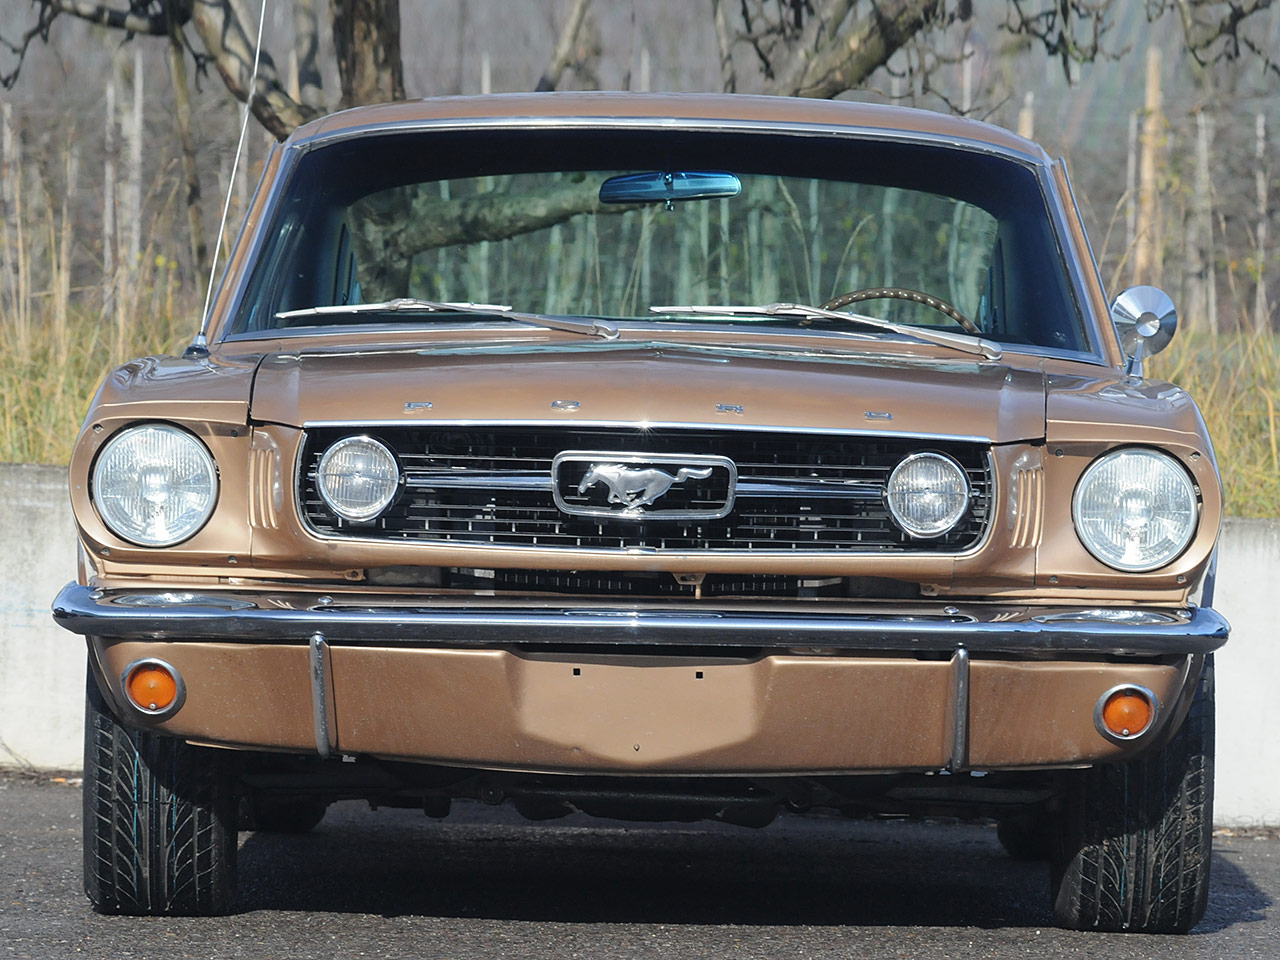 Dodge ford plymouth muscle cars autozeitung de